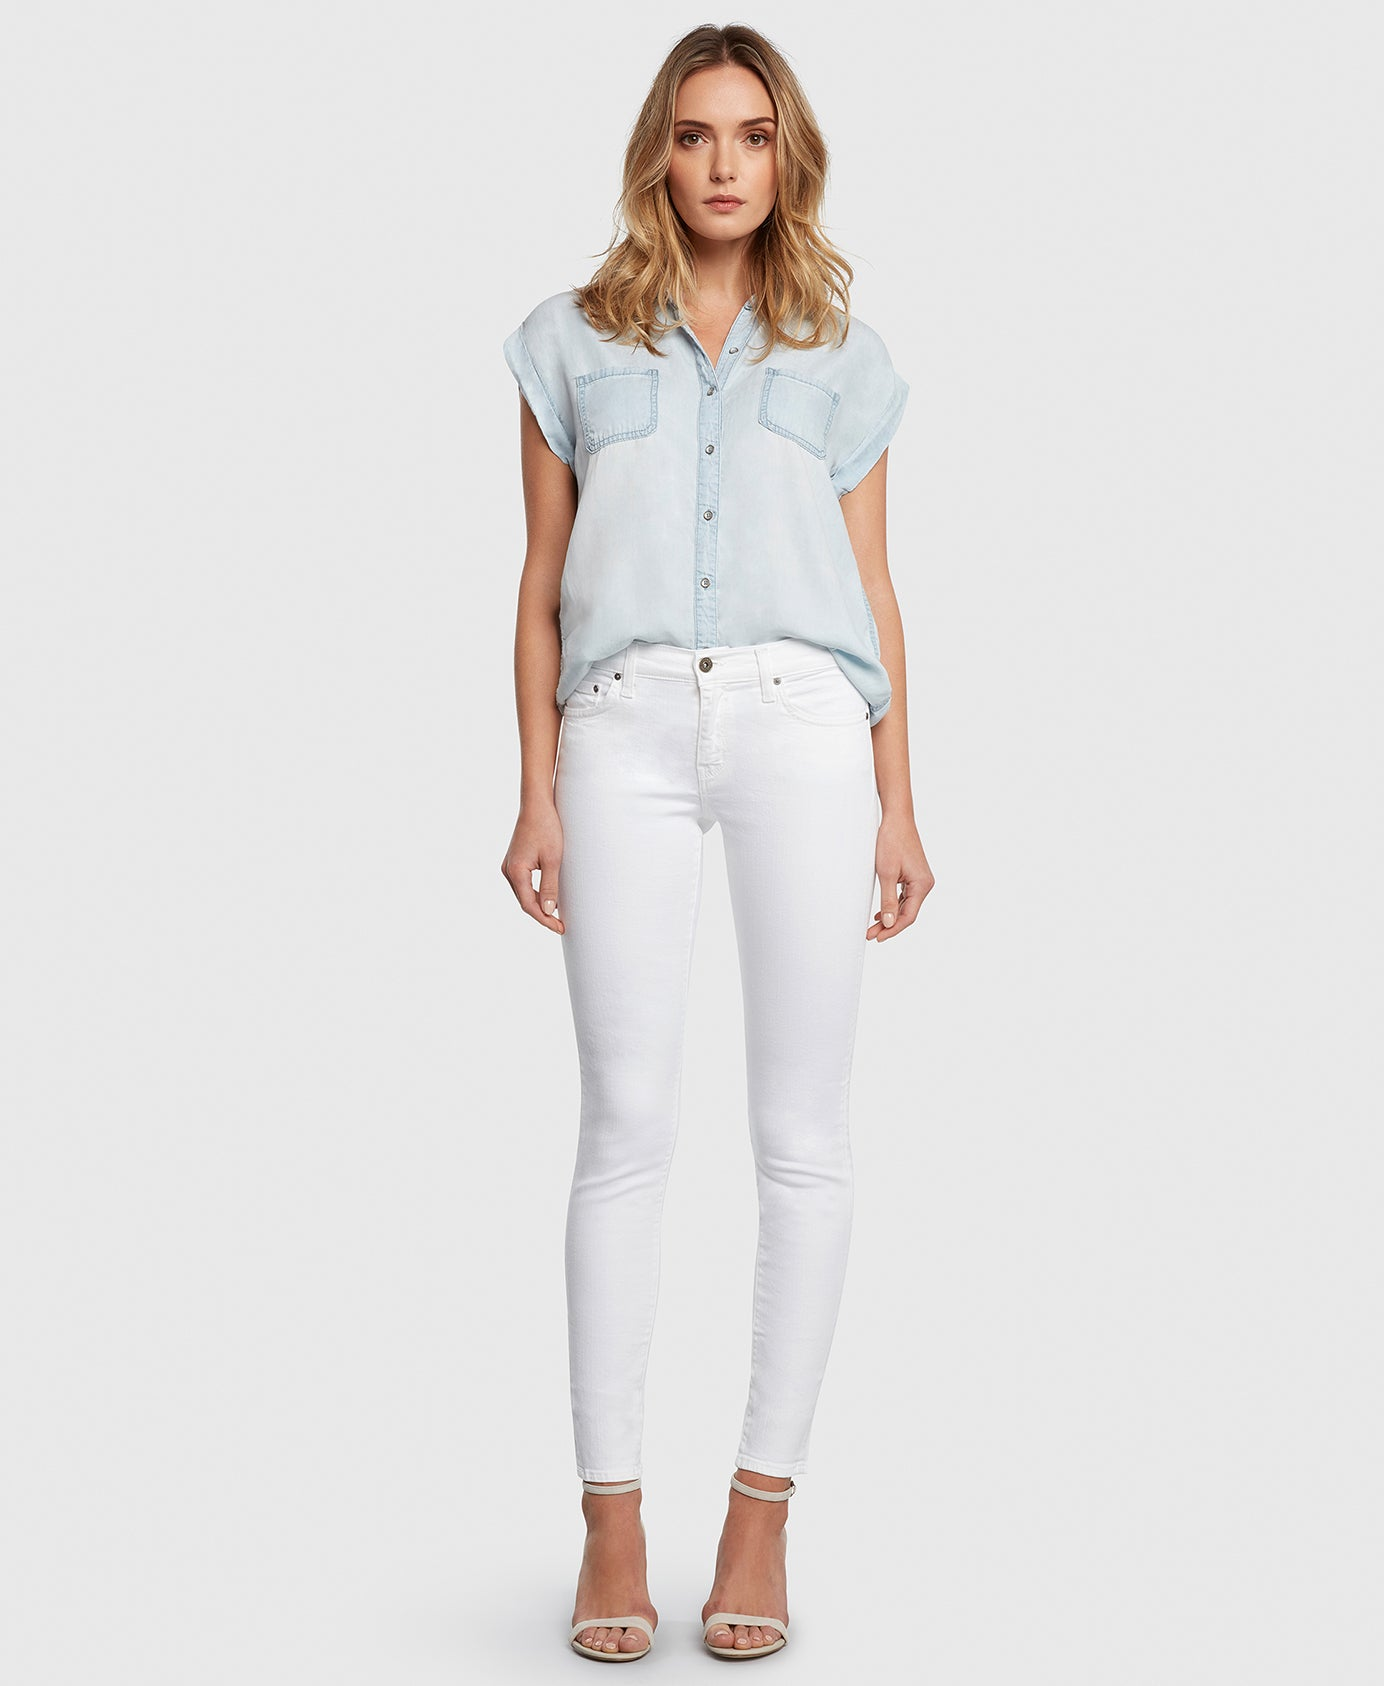 Principle DREAMER in White twill mid rise skinny jeans